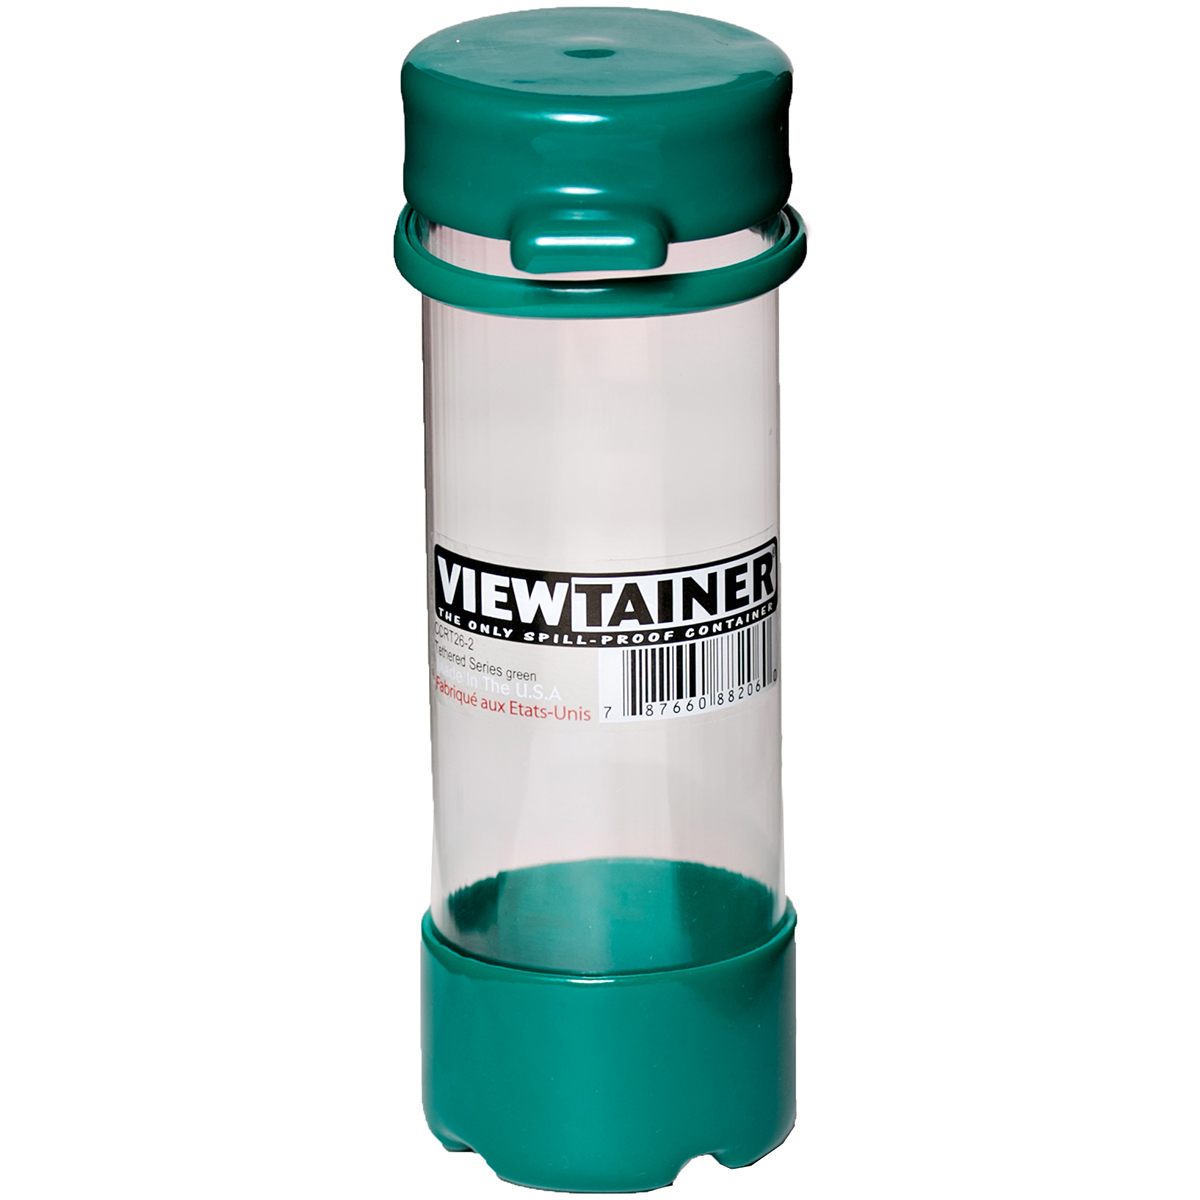 """CCRT26-2 Viewtainer Tethered Cap Storage Container 2/""""X6/""""-Green"""